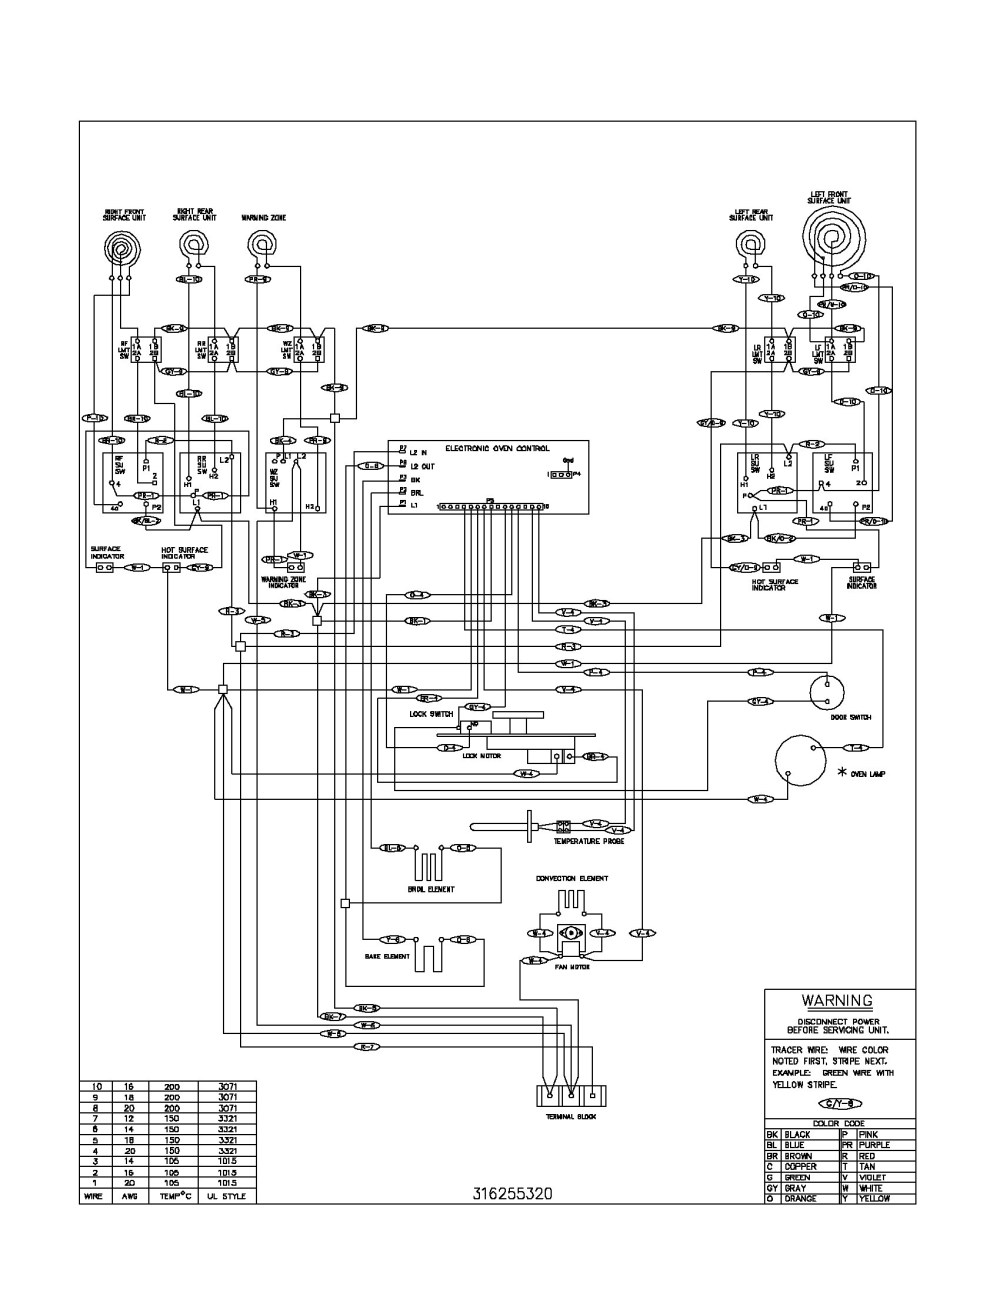 medium resolution of  roper roper range wiring diagram on 3 wire range outlet diagram roper washer wiring diagram